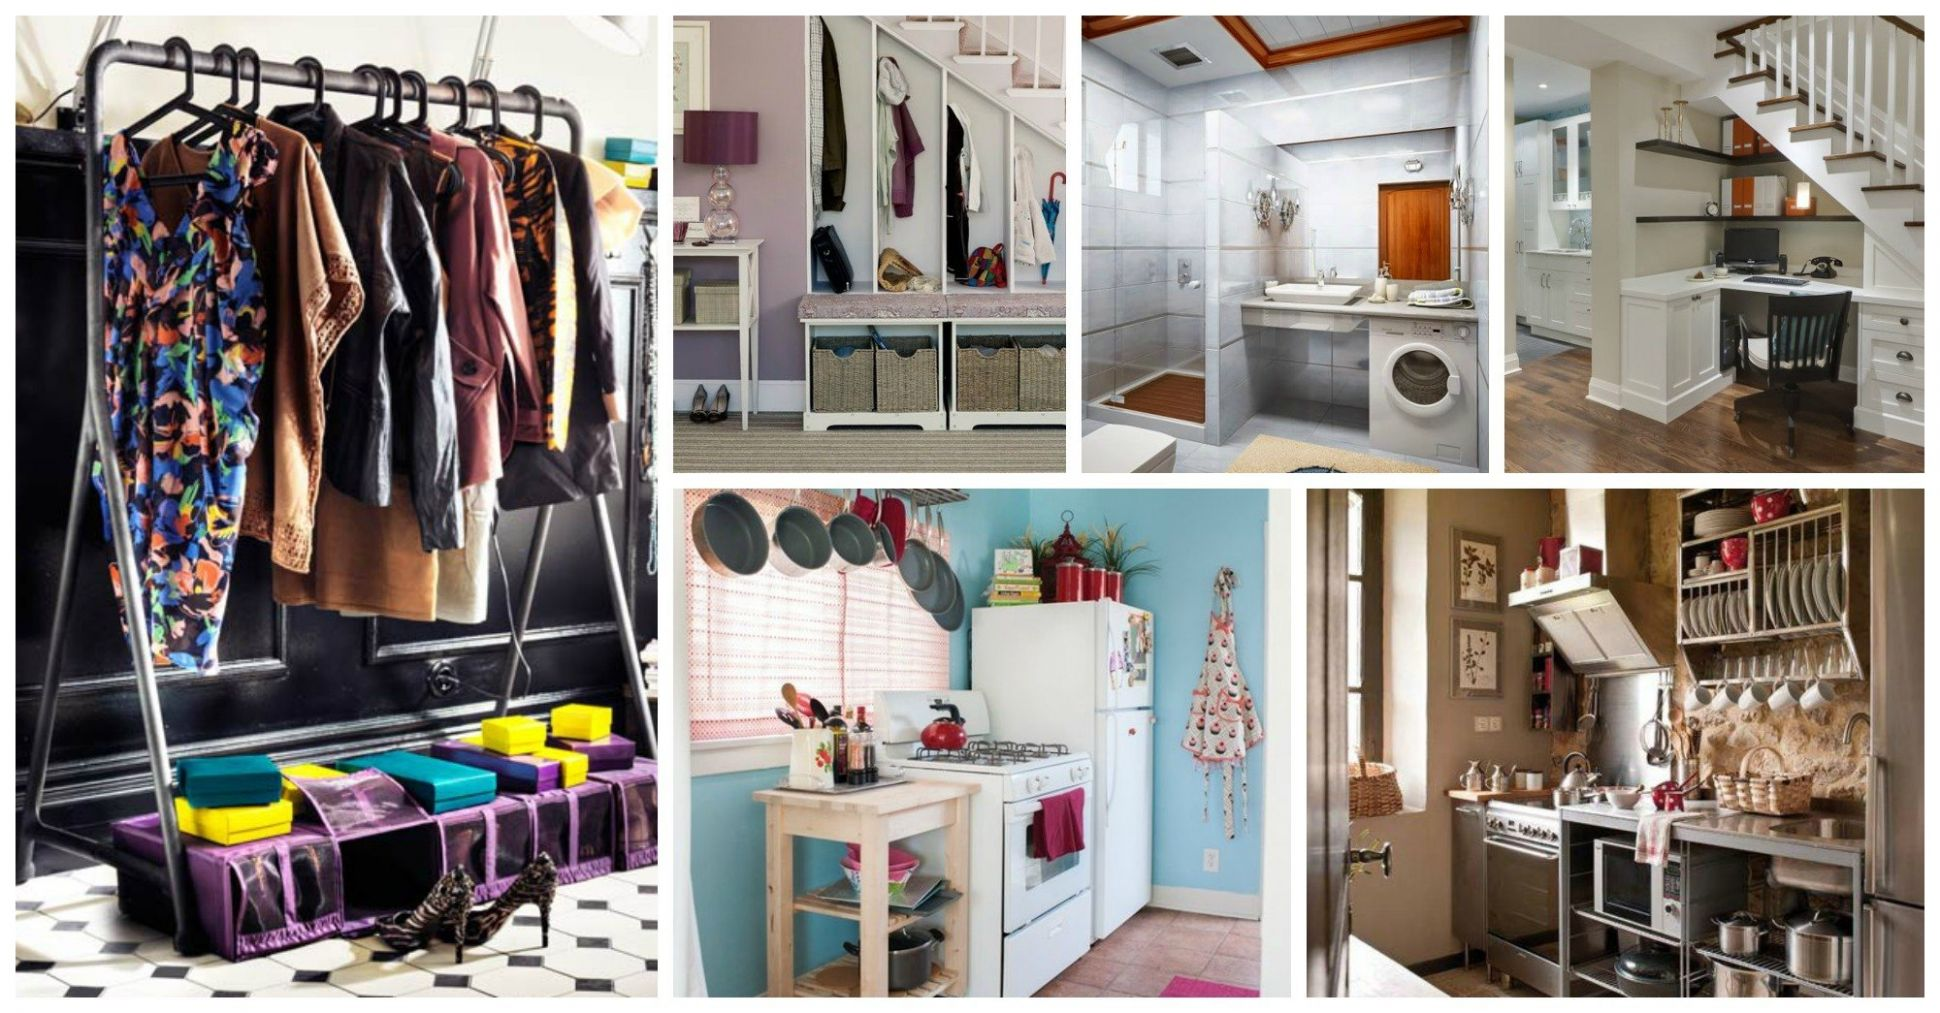 11 Awesome Tiny House Hacks to Maximize Your Space